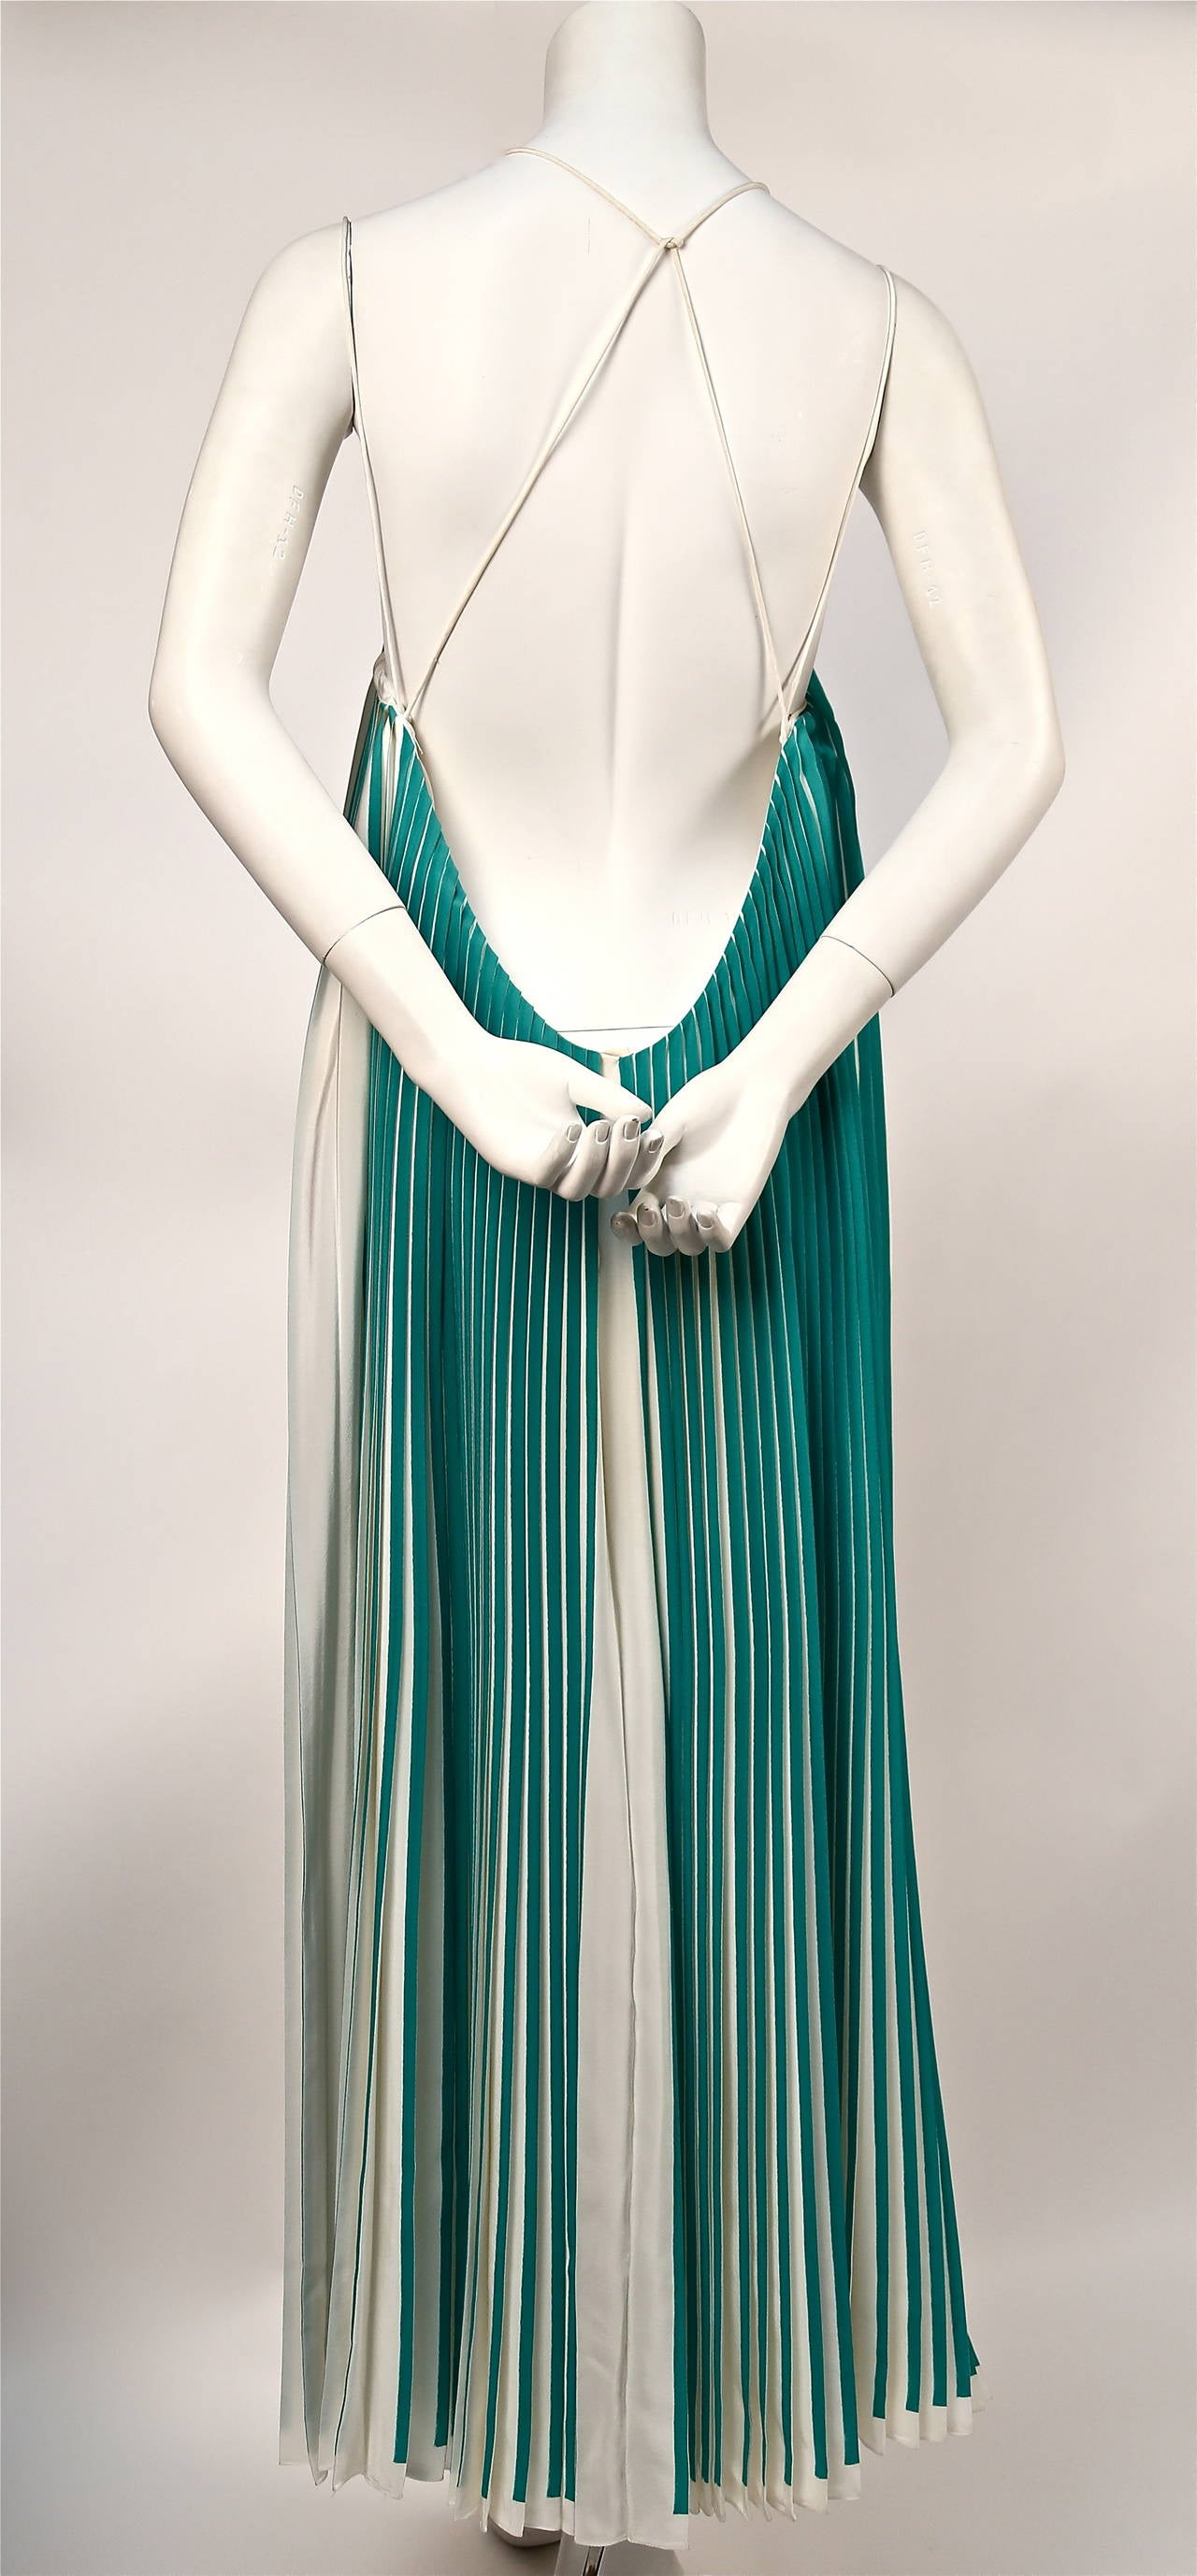 5c925335e5 very rare CHLOE green pleated silk runway dress - spring 2012 In Excellent  Condition For Sale